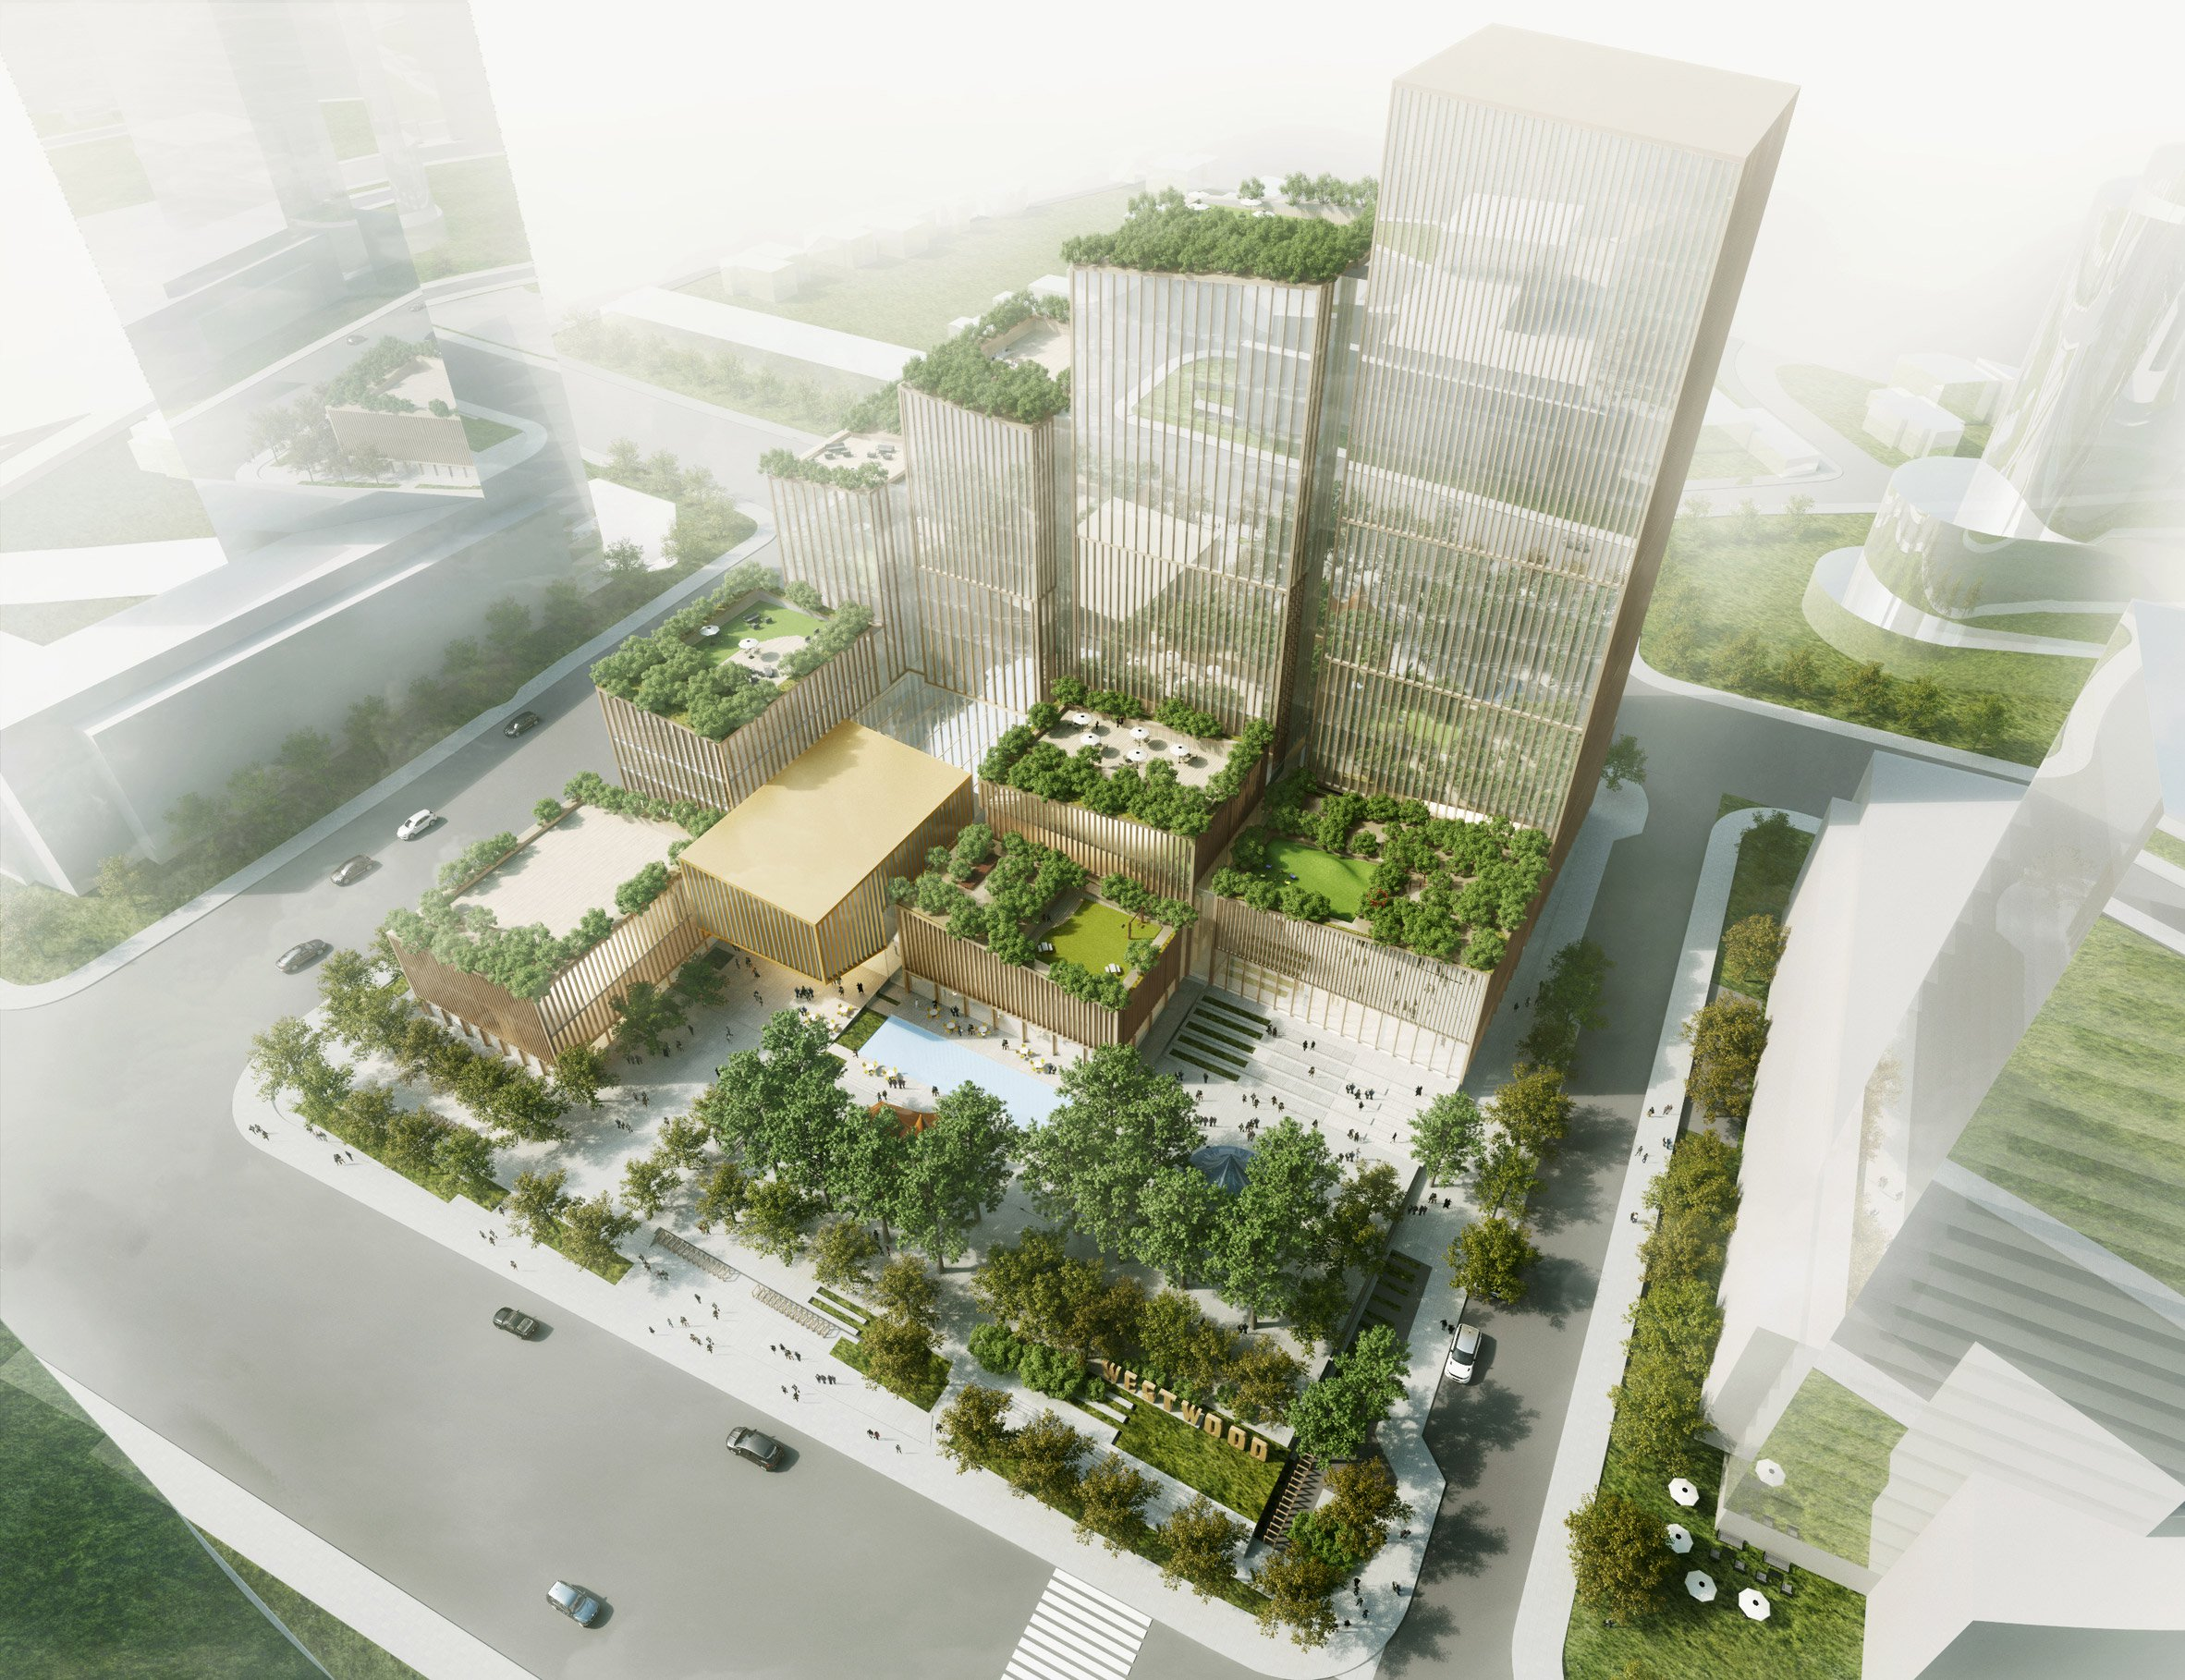 Henning Larsen's Etobicoke Civic Centre shelters public square from cold winds